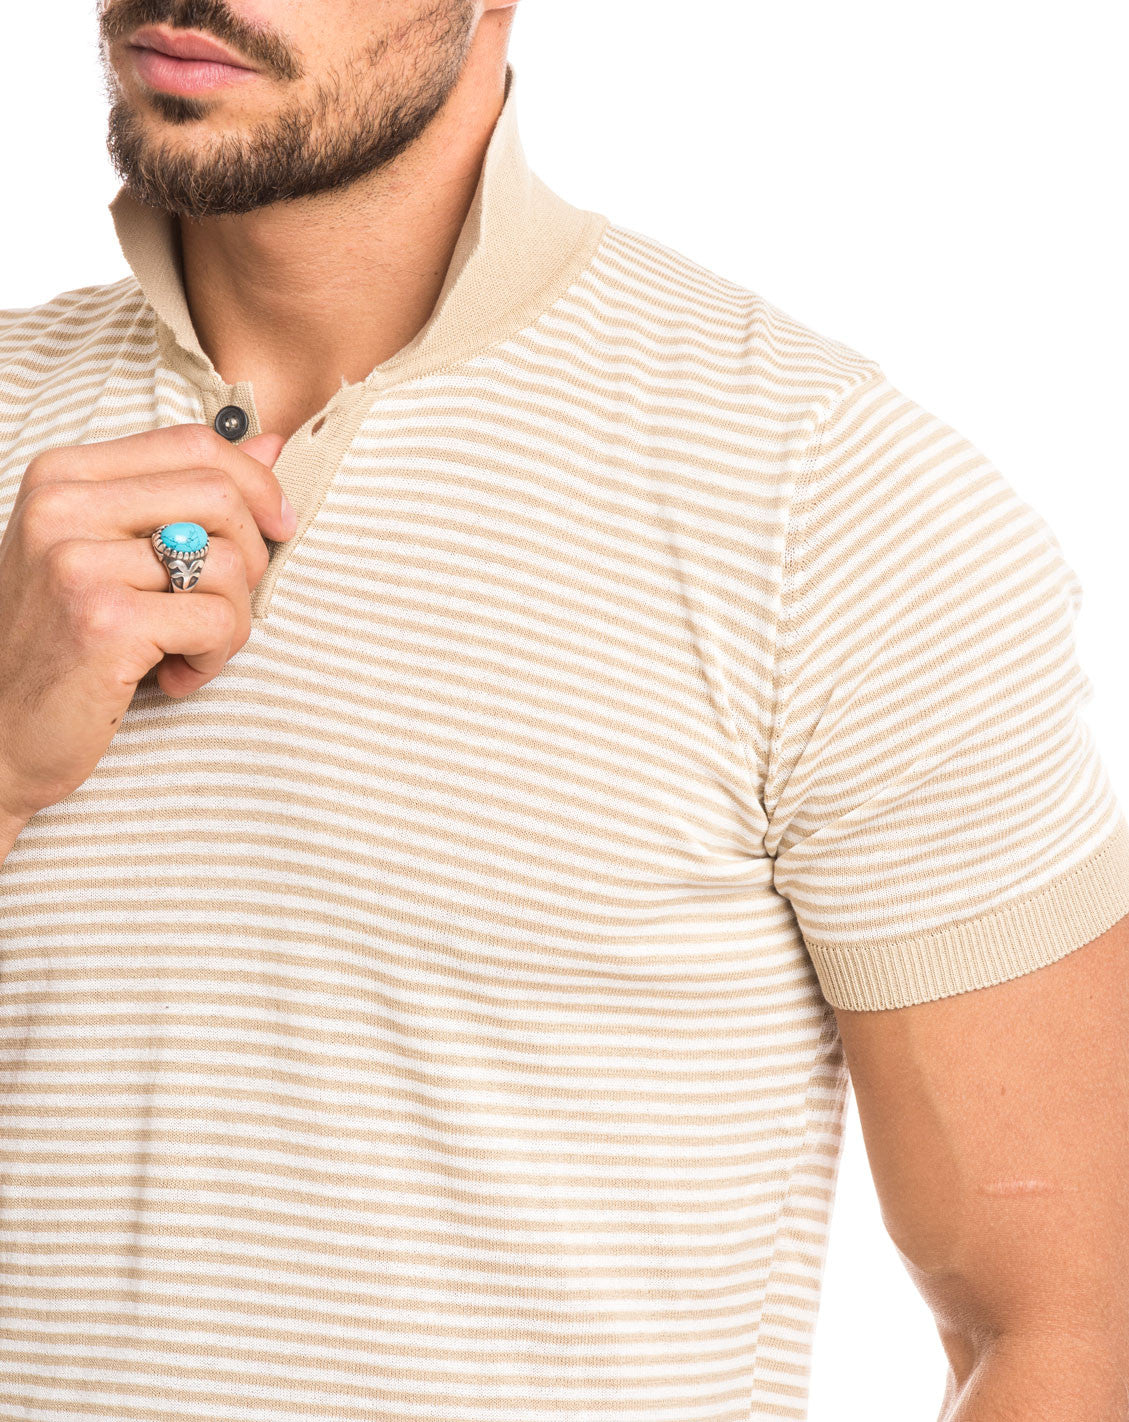 MEN'S CLOTHING | BEIGE CREAM STRIPED POLO | RIBBED COLLAR AND CUFFS | BUTTON PLACKET | NOHOW STREET COUTURE | NOHOW